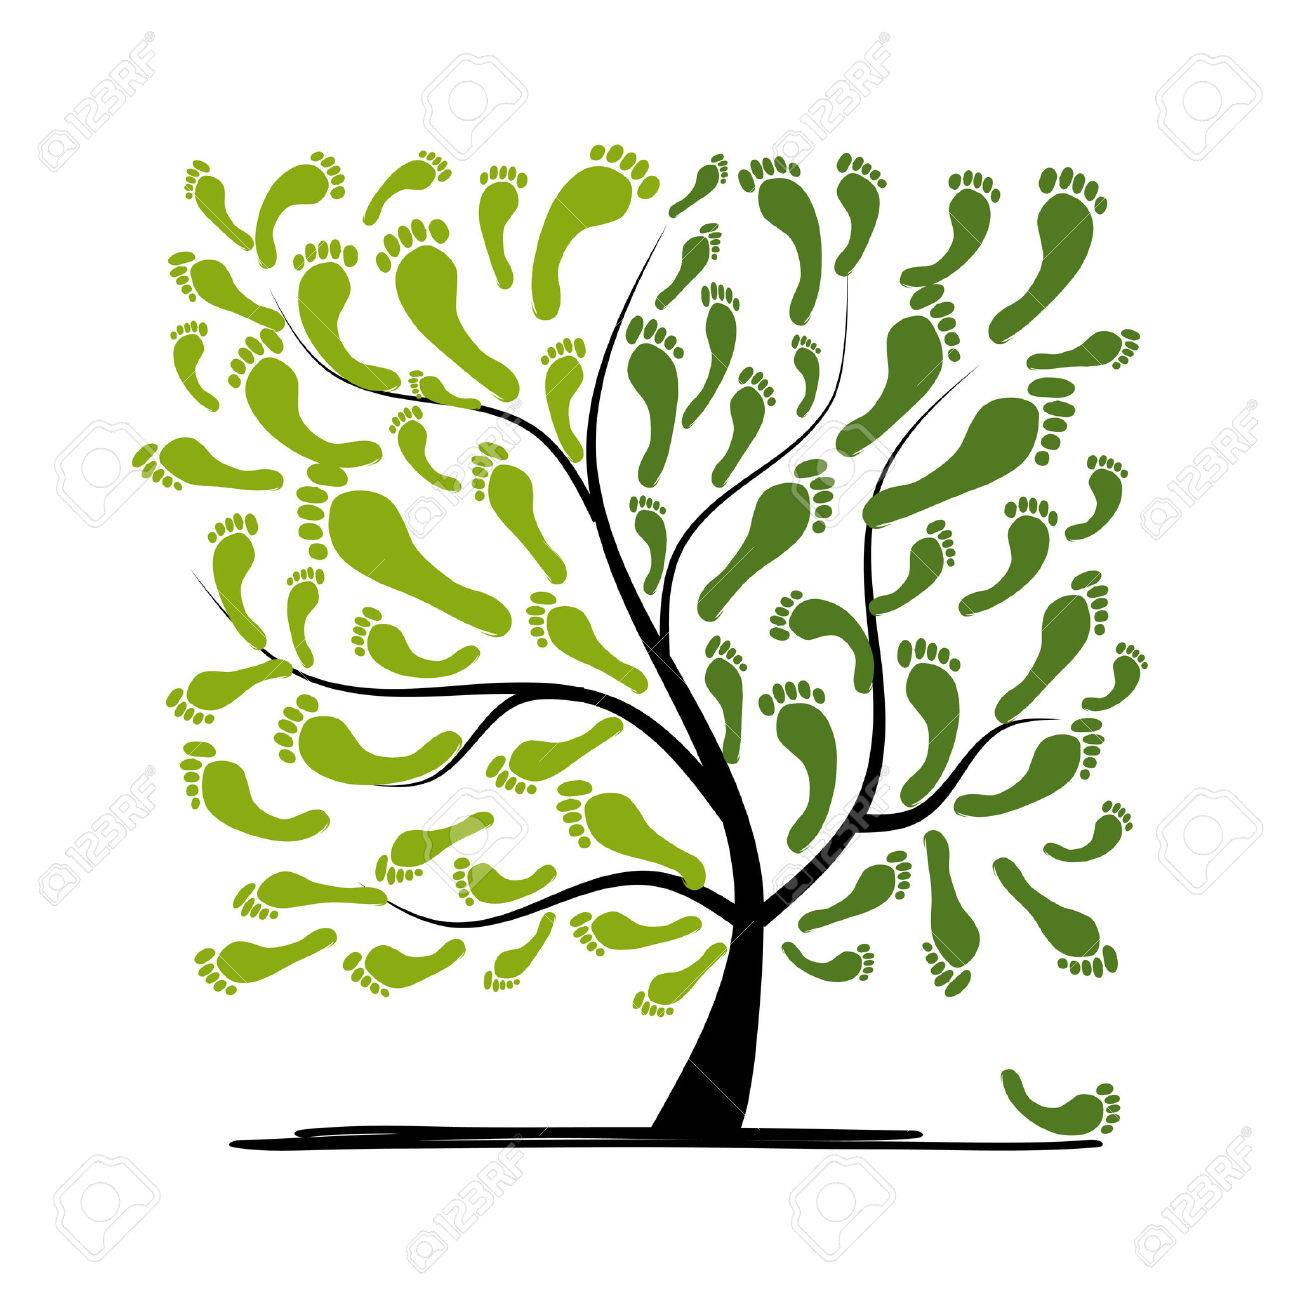 Green footprint tree for your design Stock Vector - 30683543